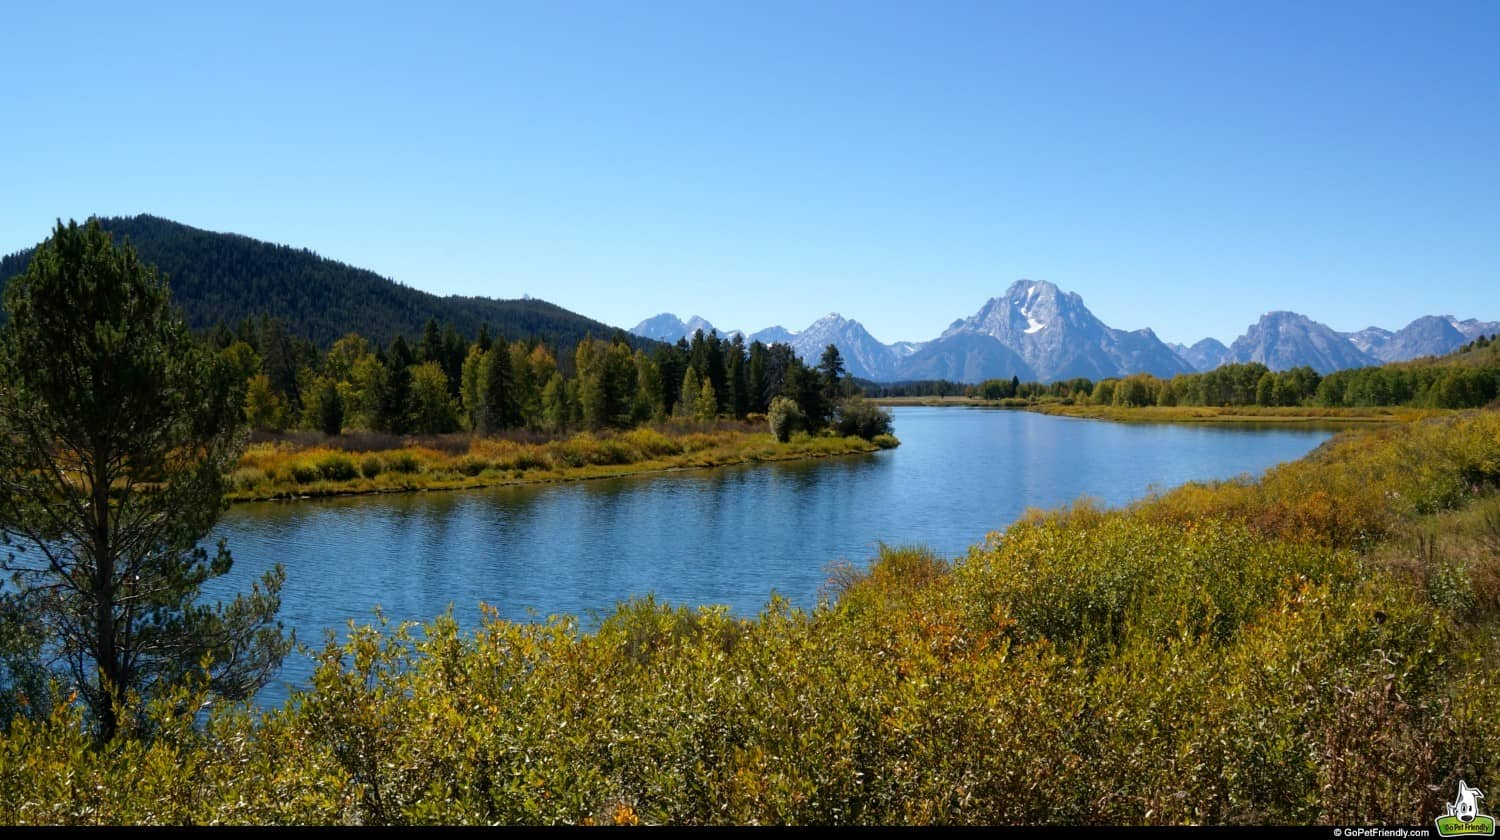 Grand Teton National Park - Jackson, WY